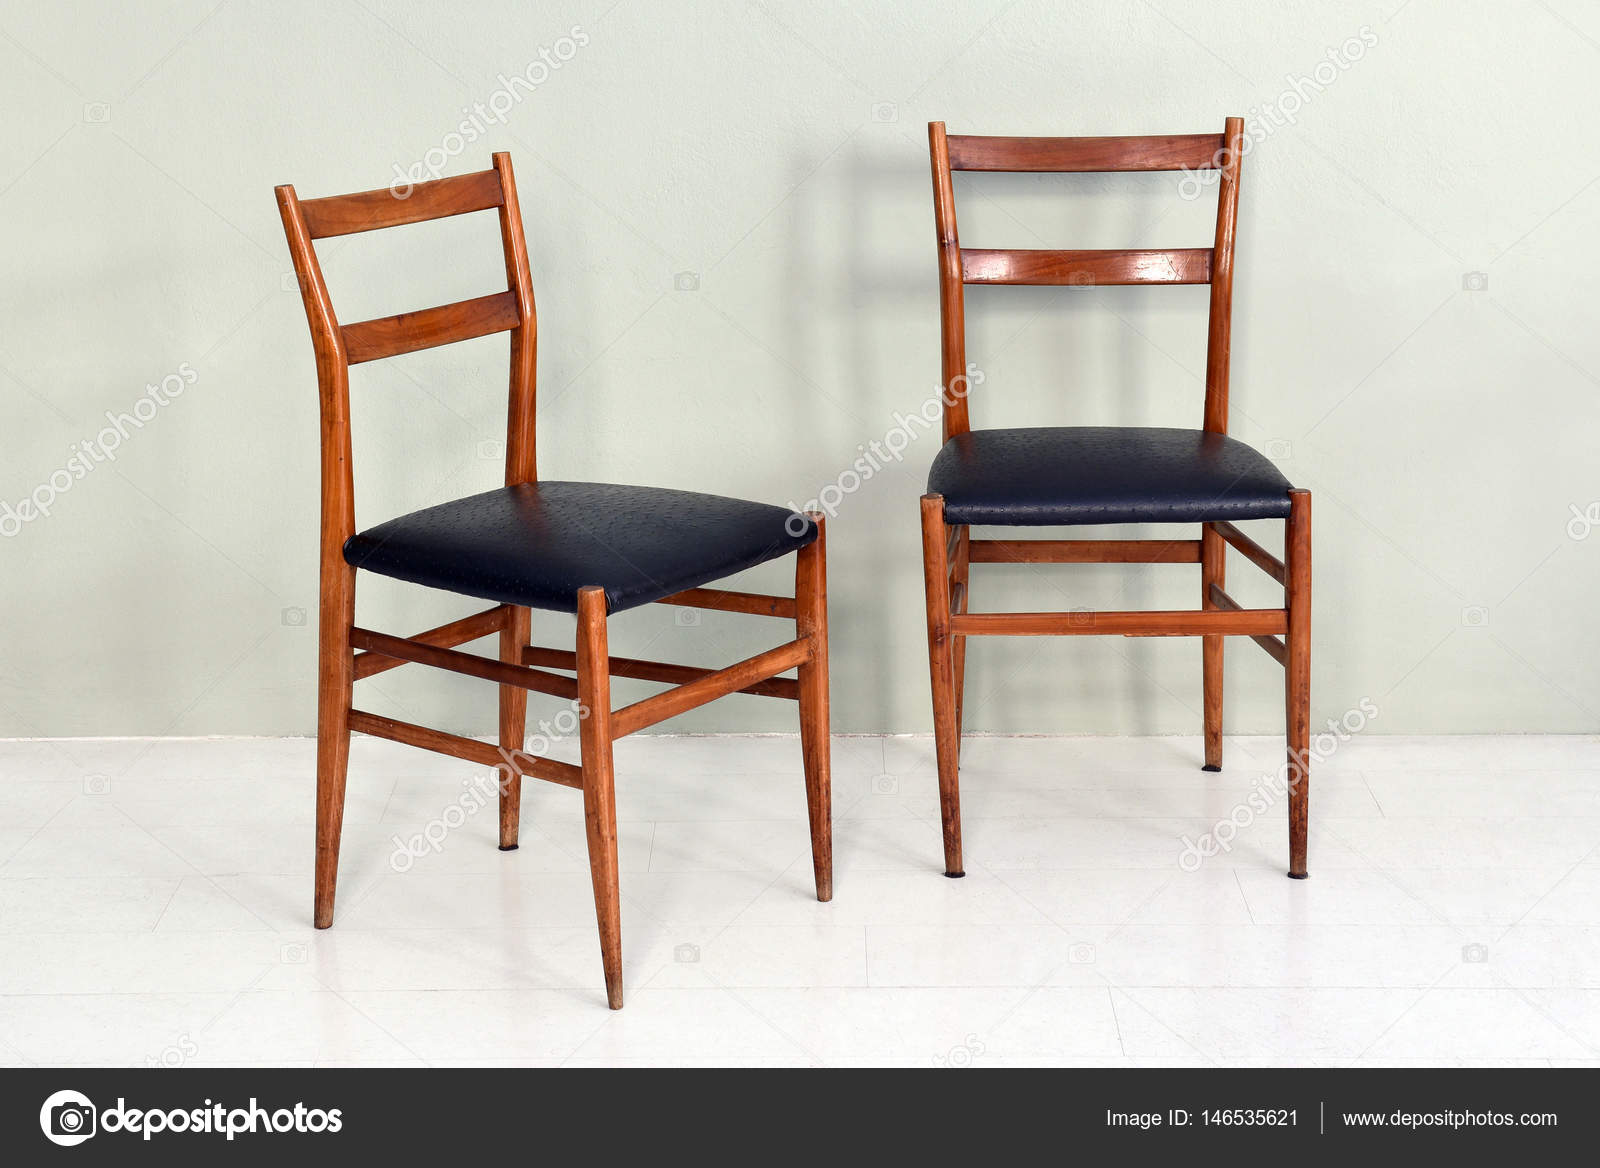 Old Fashioned Kitchen Chairs Pair Of Retro Kitchen Chairs With Wood Legs Stock Photo C Photology1971 146535621